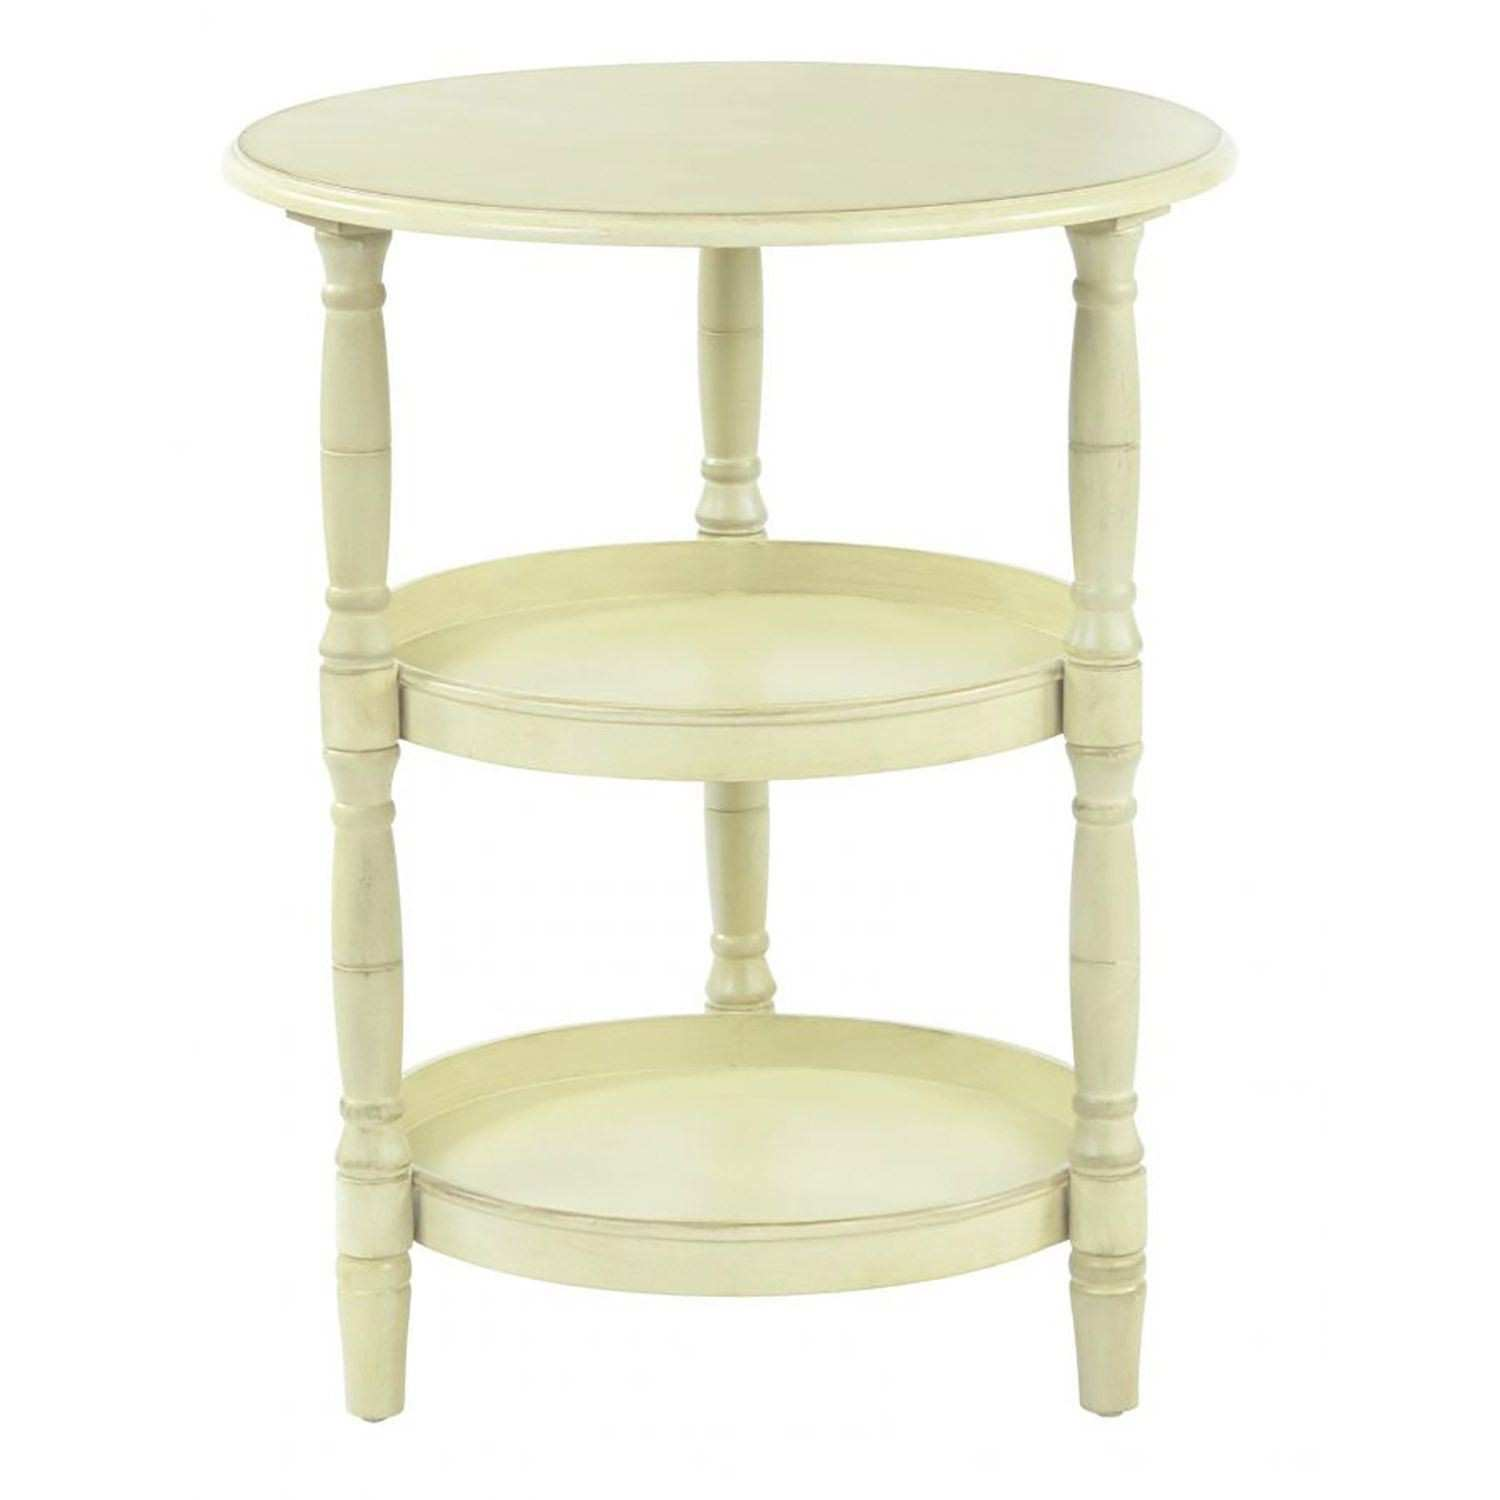 lovely antique round side table for brakefield style awesome lynwood accent celadon pedestal chairside with attached lamp folding sides pier one chairs lawn target retro furniture